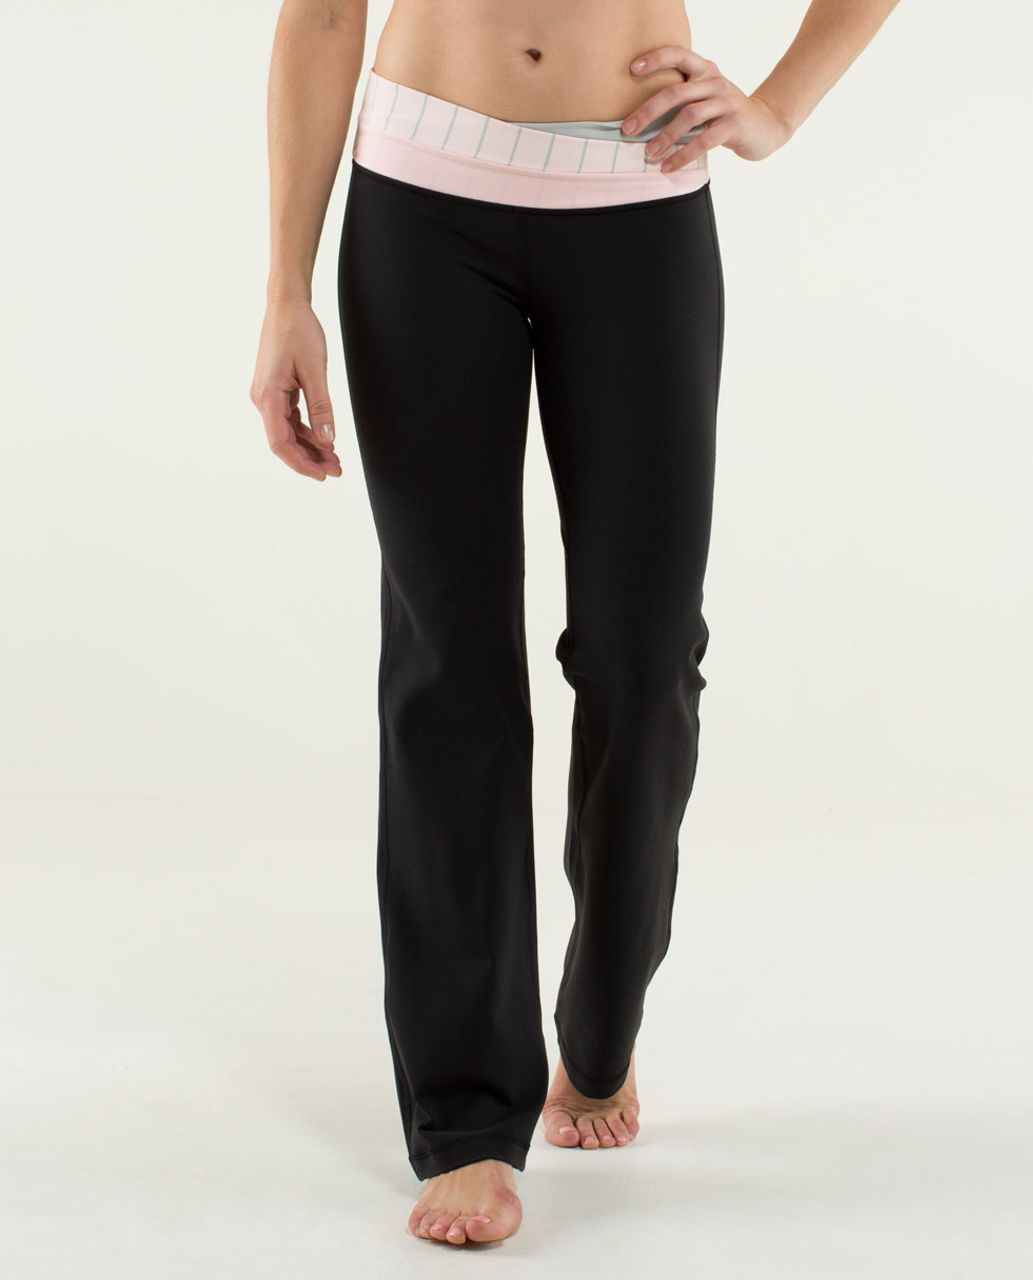 Lululemon Astro Pant (Tall) - Black / Silver Spoon / Slalom Stripe Pretty Pink